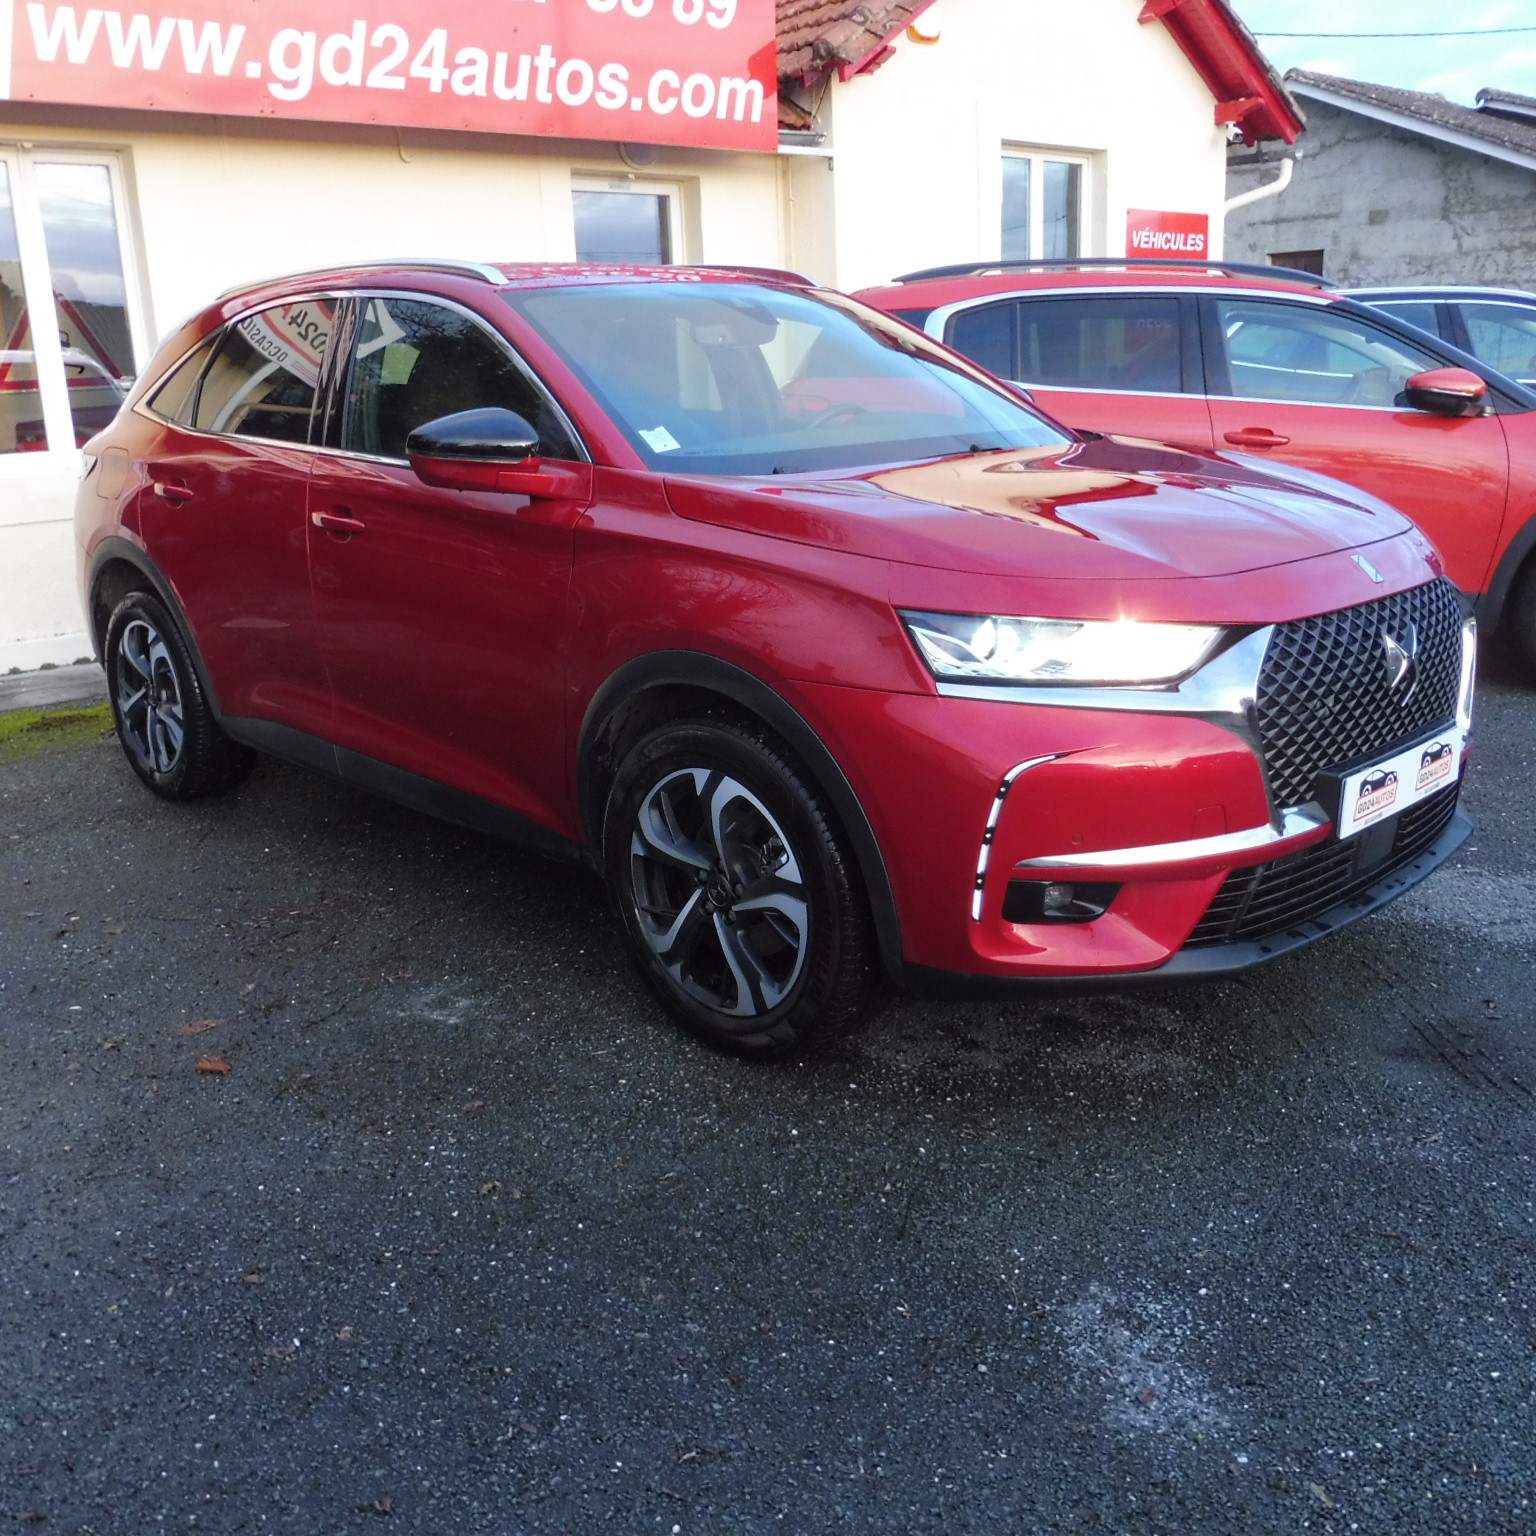 DS DS 7 CROSSBACK 1.5 BLUEHDI 130 SO CHIC+options